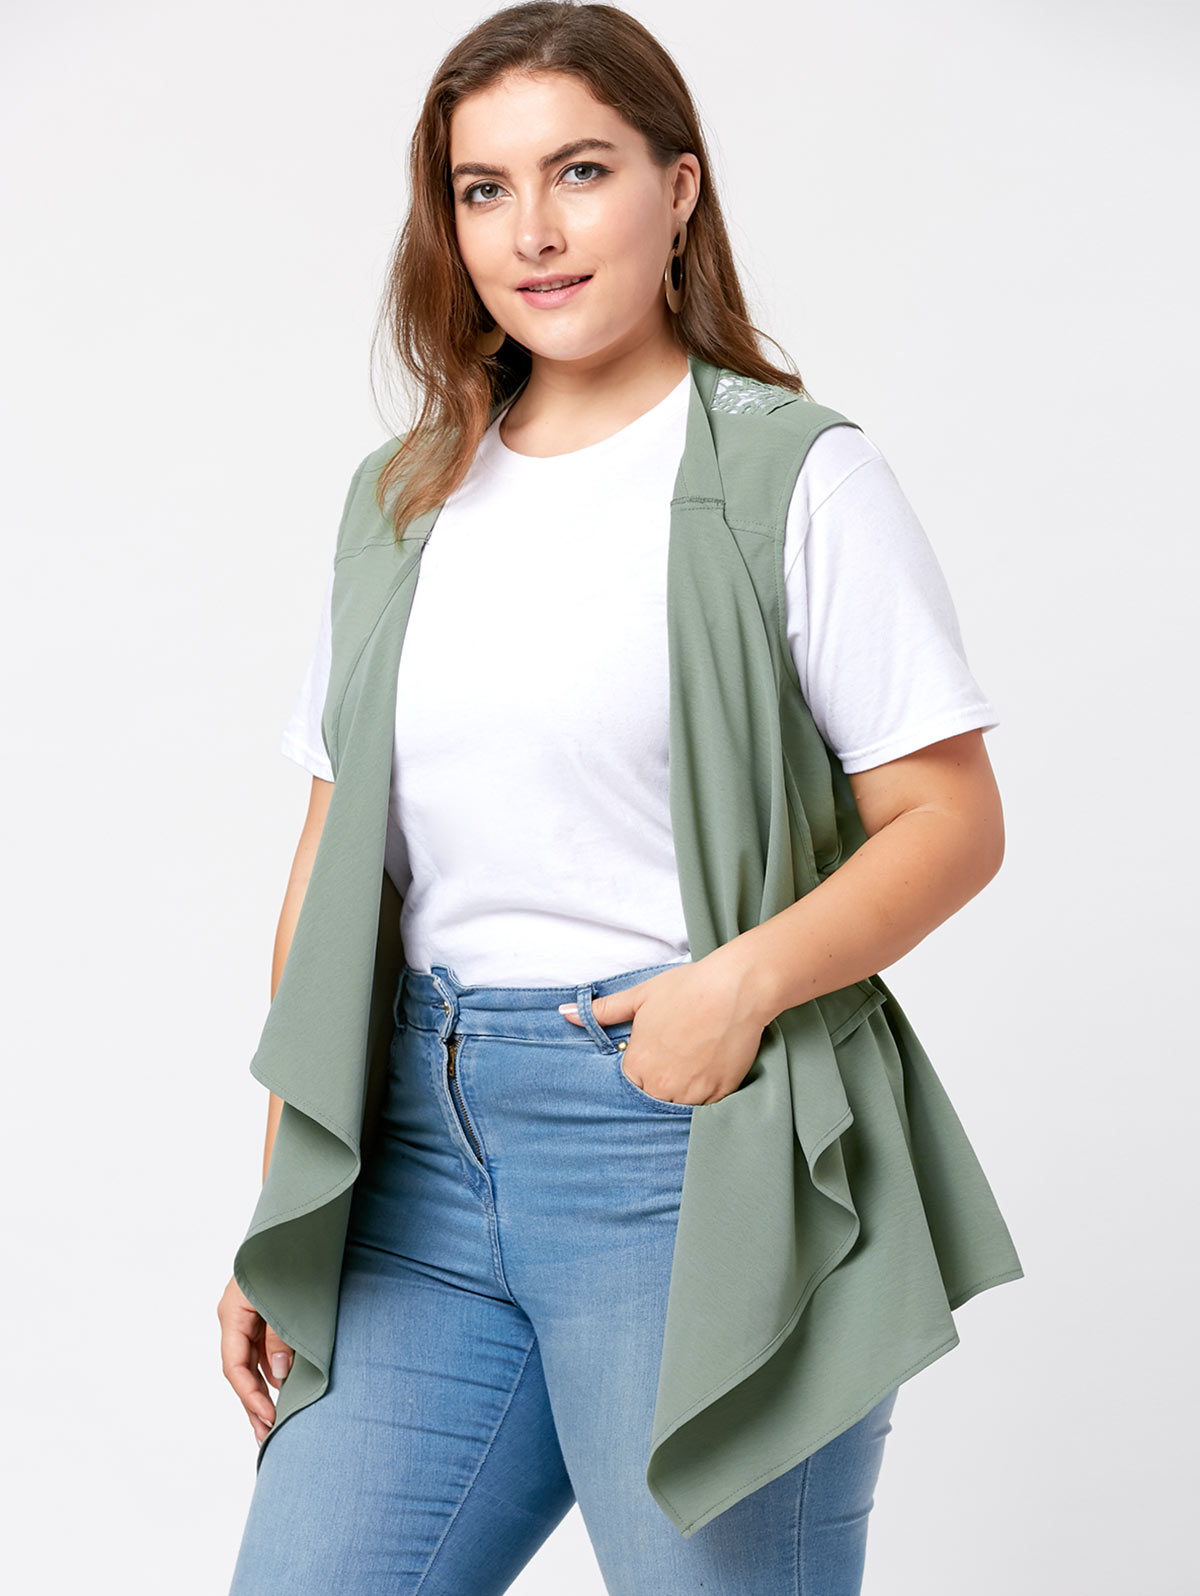 0befef4d2ae Gamiss Plus Size Women Autumn Spring Lace Insert Waterfall Wasitcoat Vest  Waistcoat Lady Office Wear Long Coat Casual Sleeveles